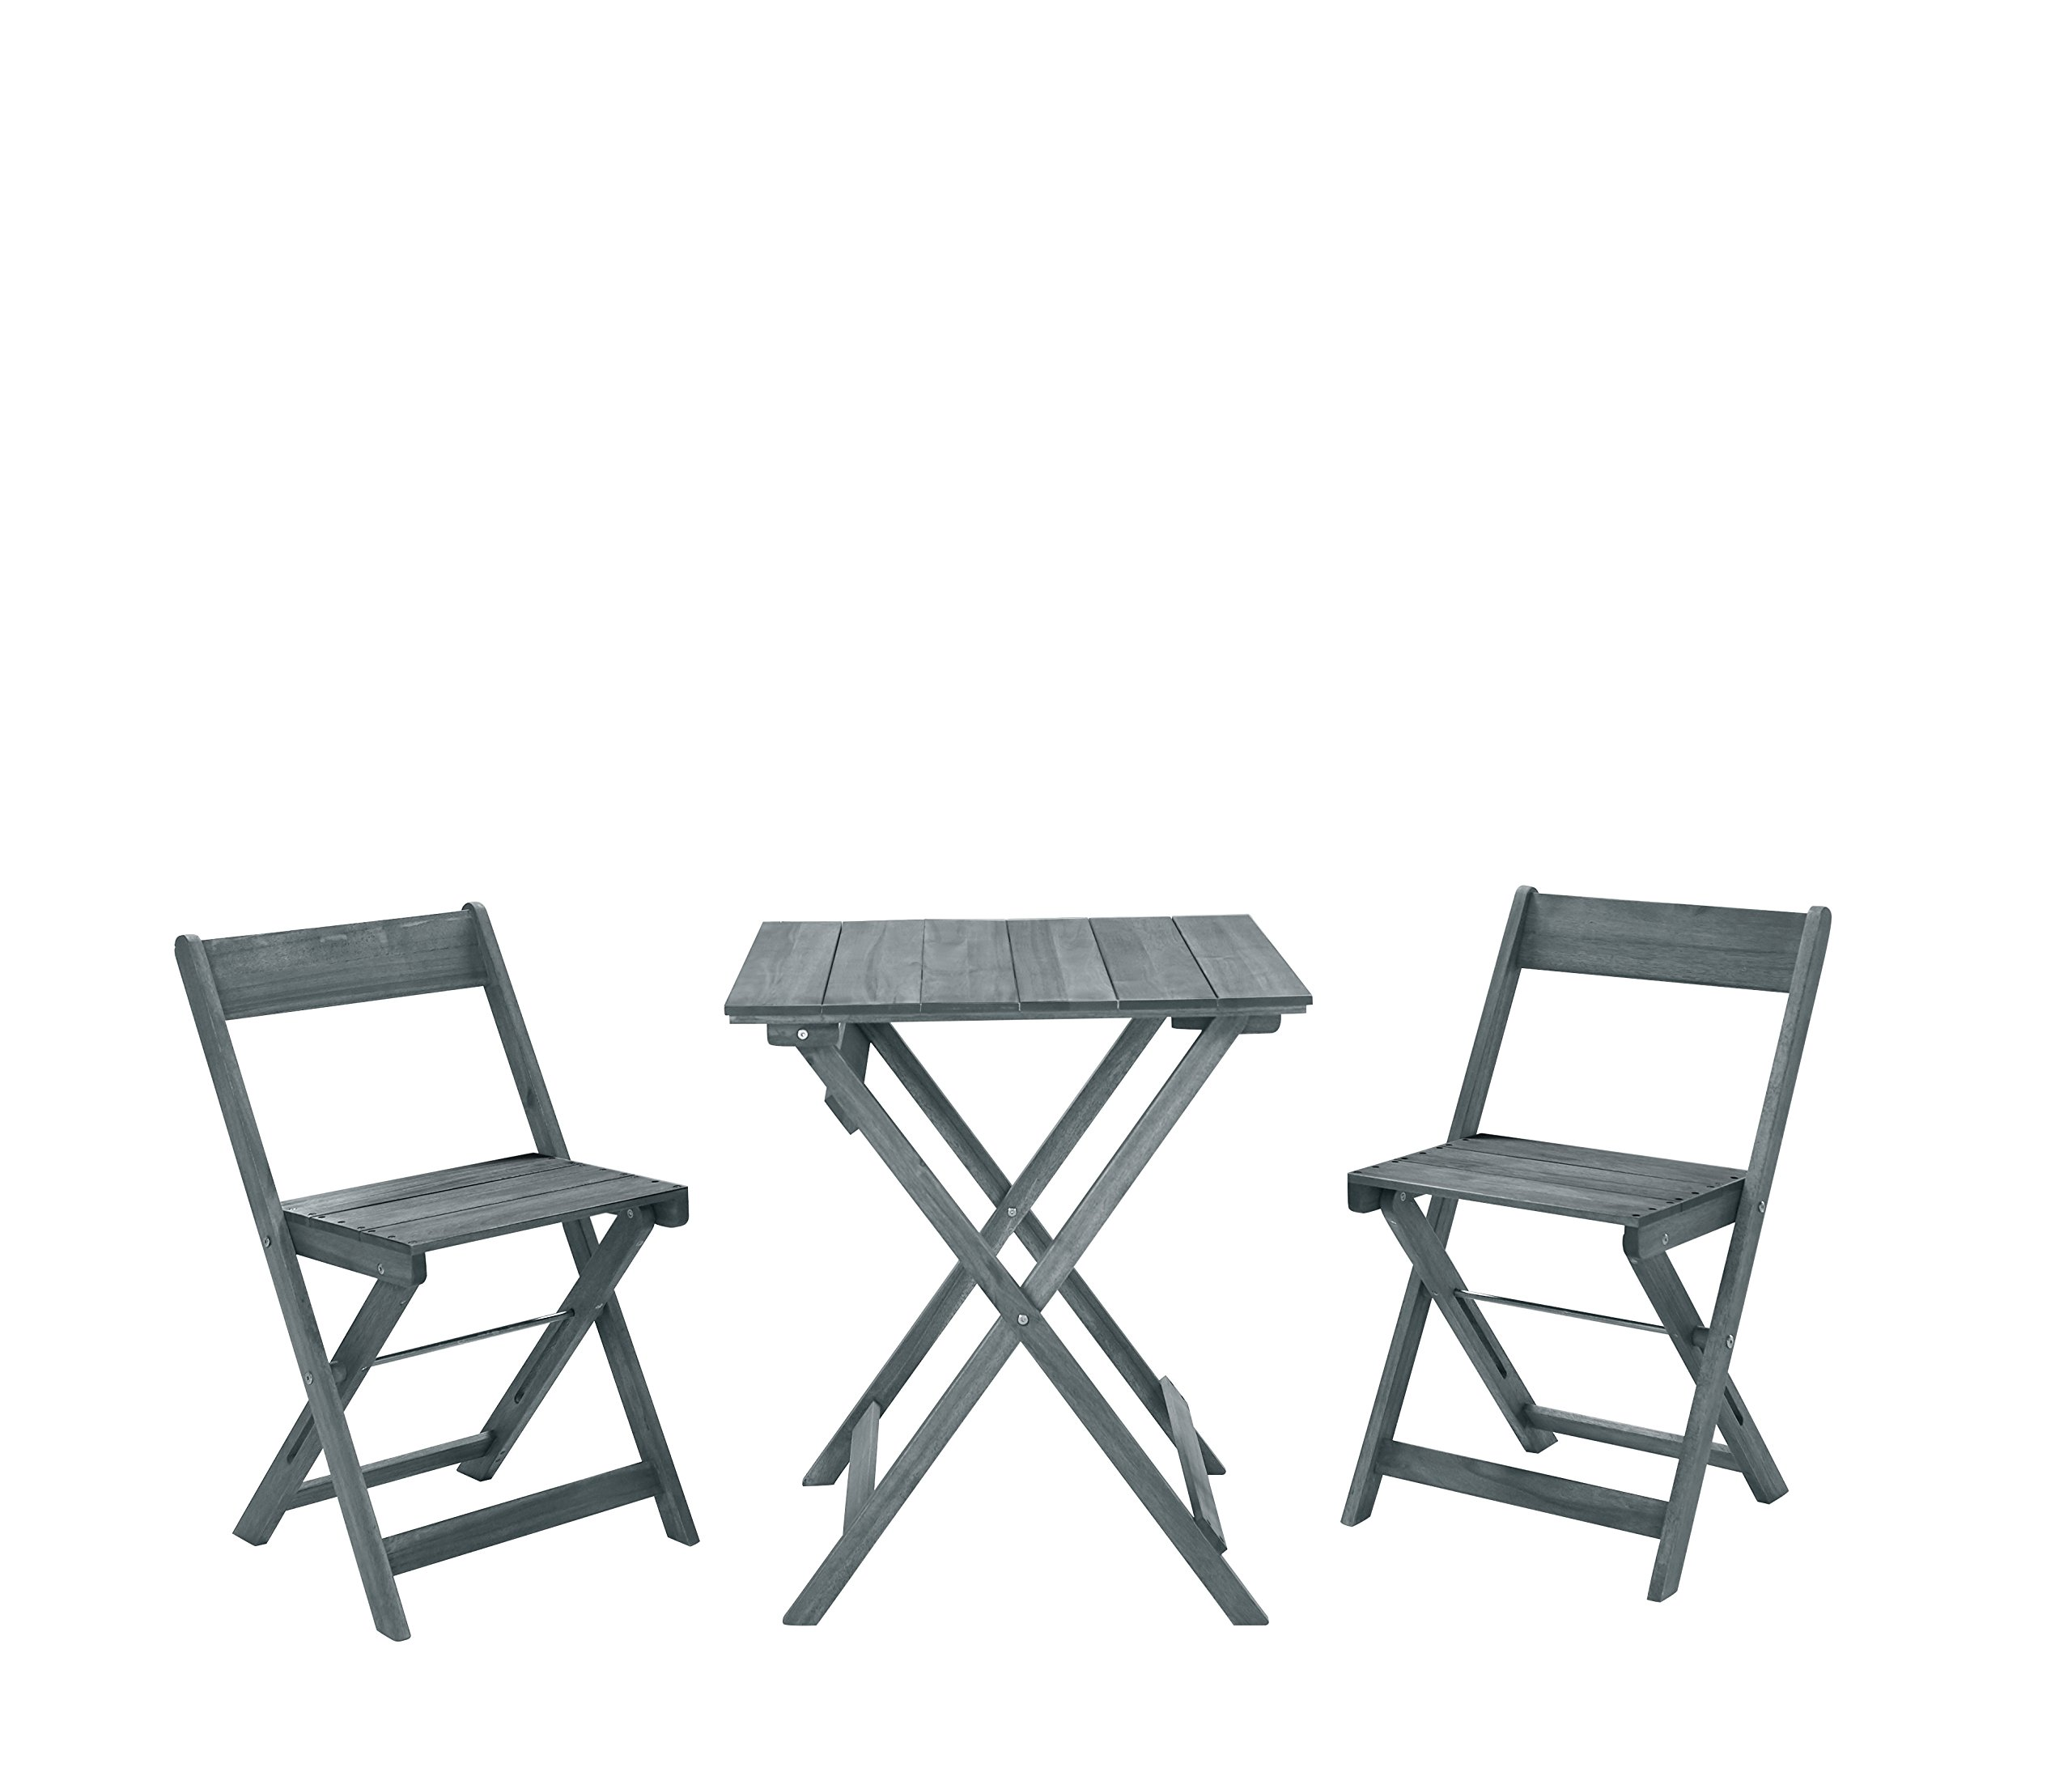 Linon 3-Pc Rockport Square Table Set in Gray